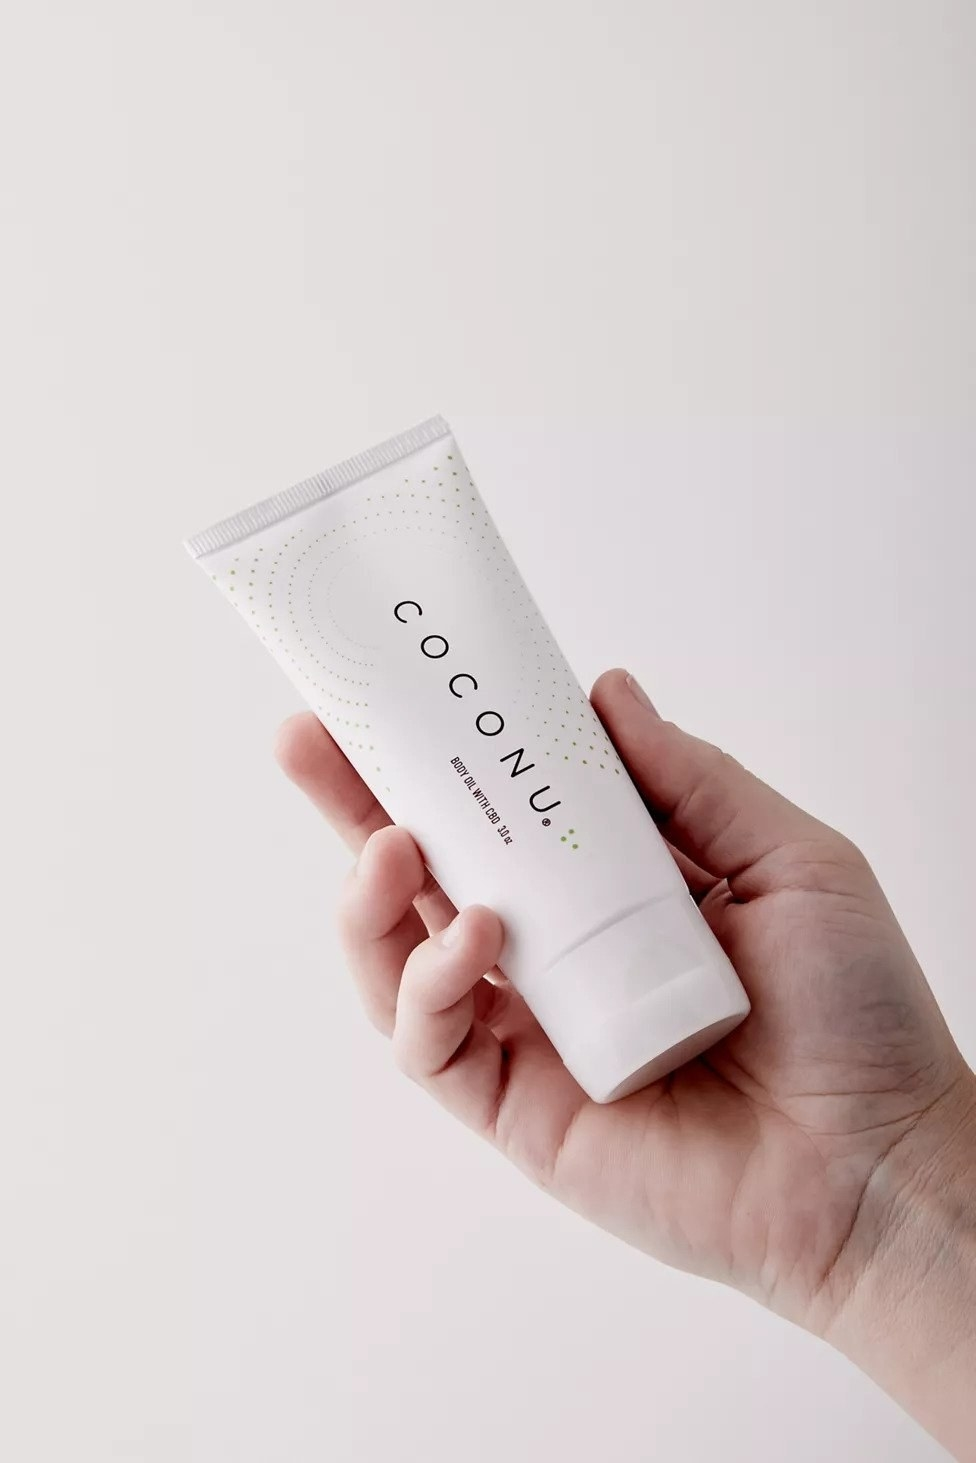 Model holding white tube of Coconu lubricant